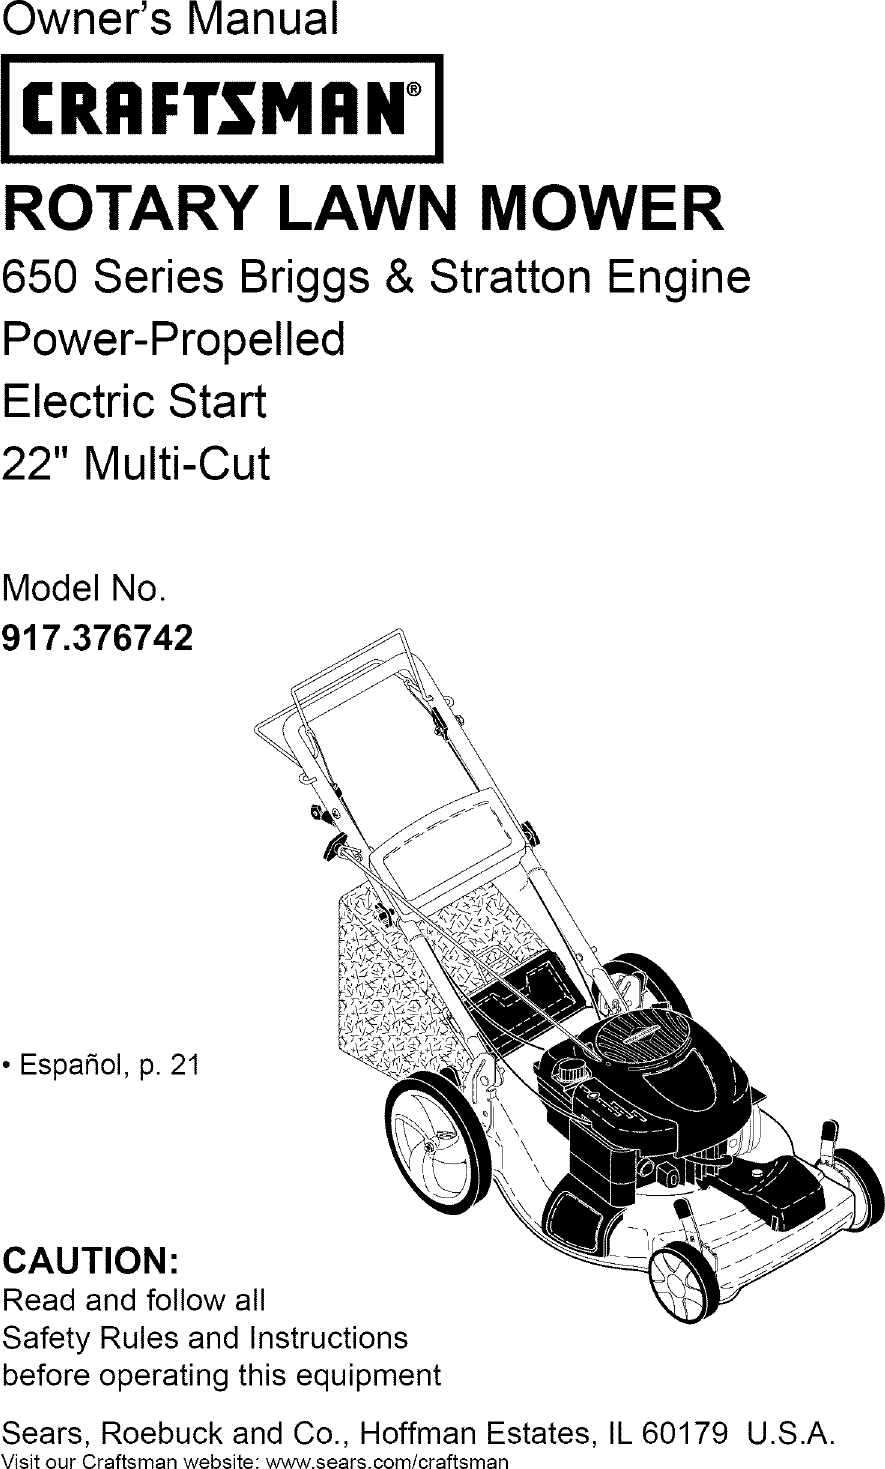 Craftsman 917376742 User Manual LAWN MOWER Manuals And